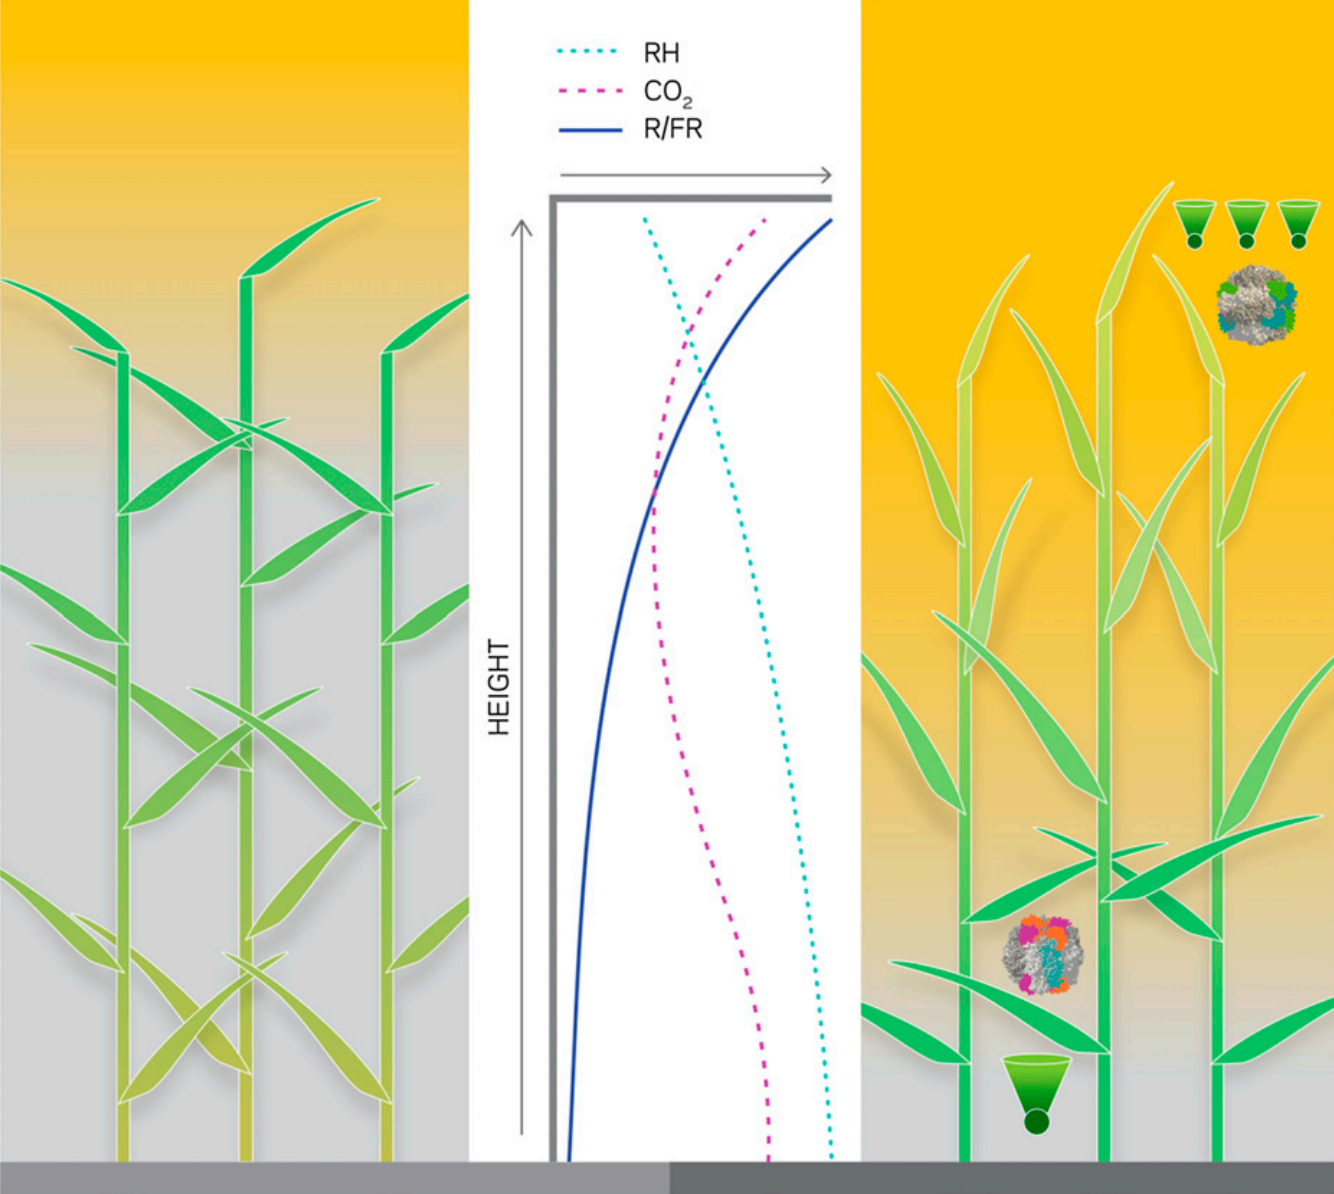 The Plan to Feed the World by Hacking Photosynthesis